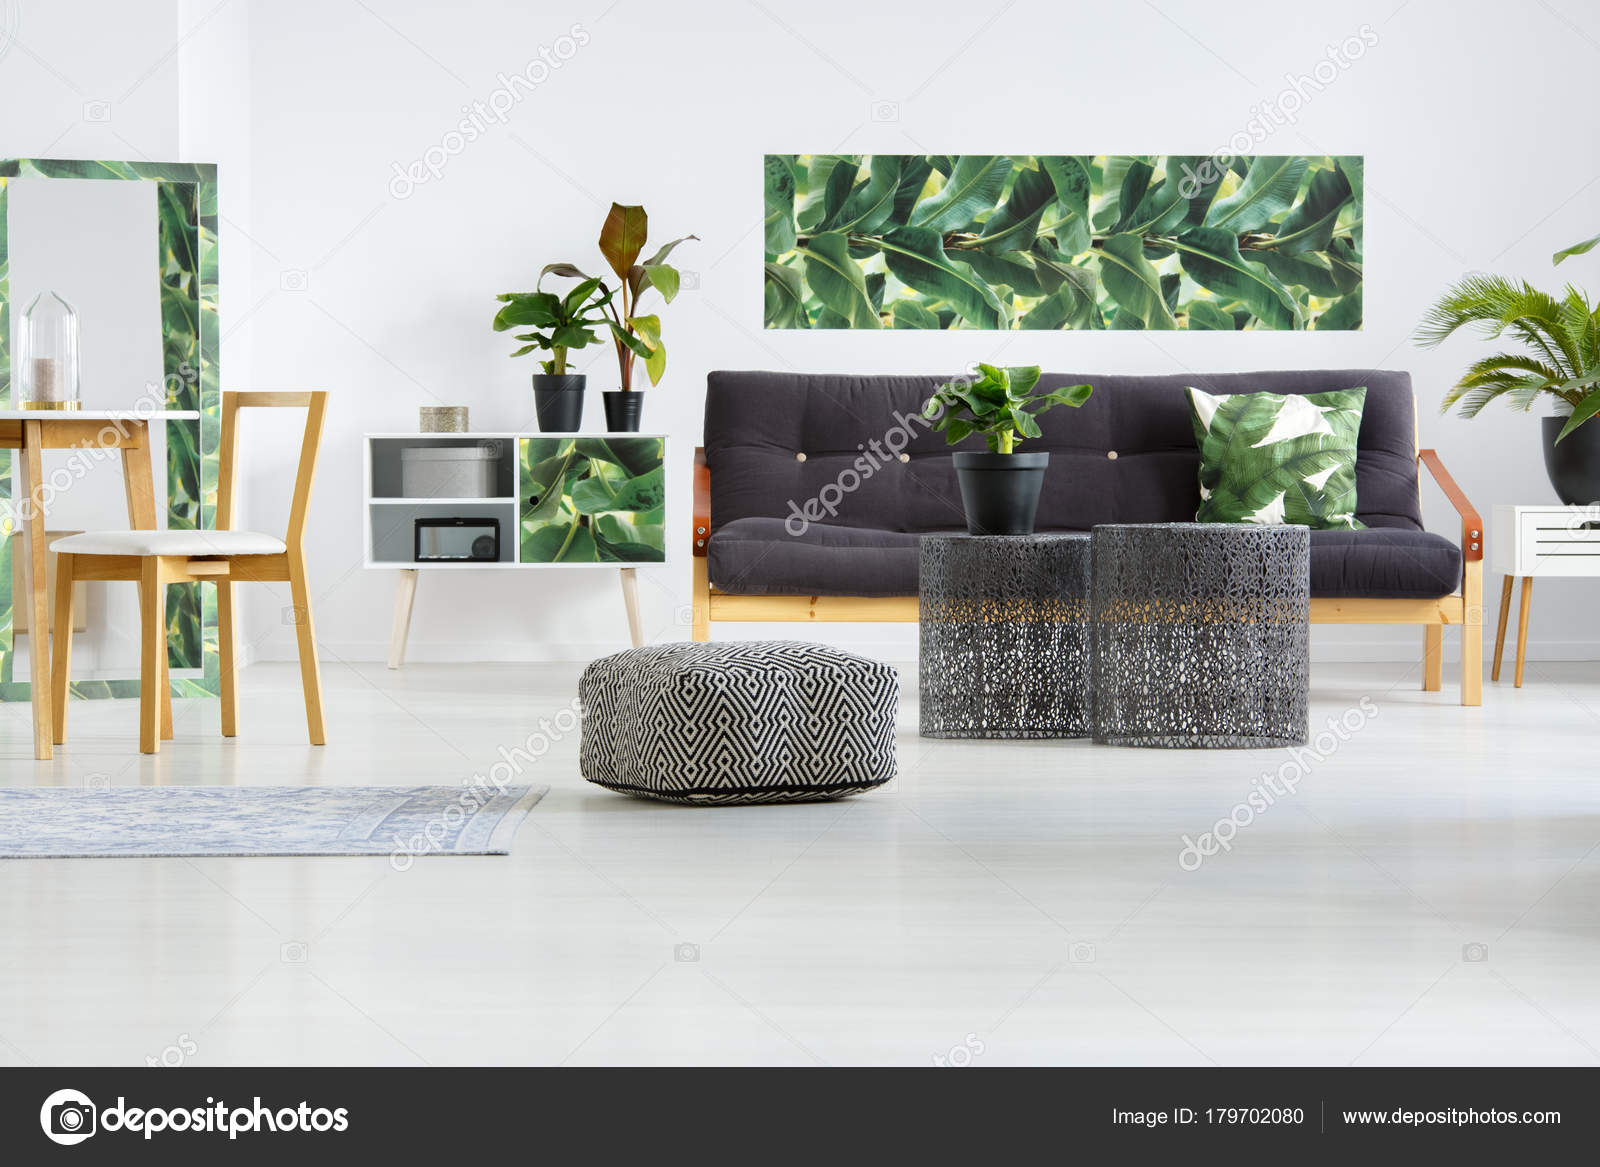 Pouf in floral living room — Stock Photo © photographee.eu #179702080